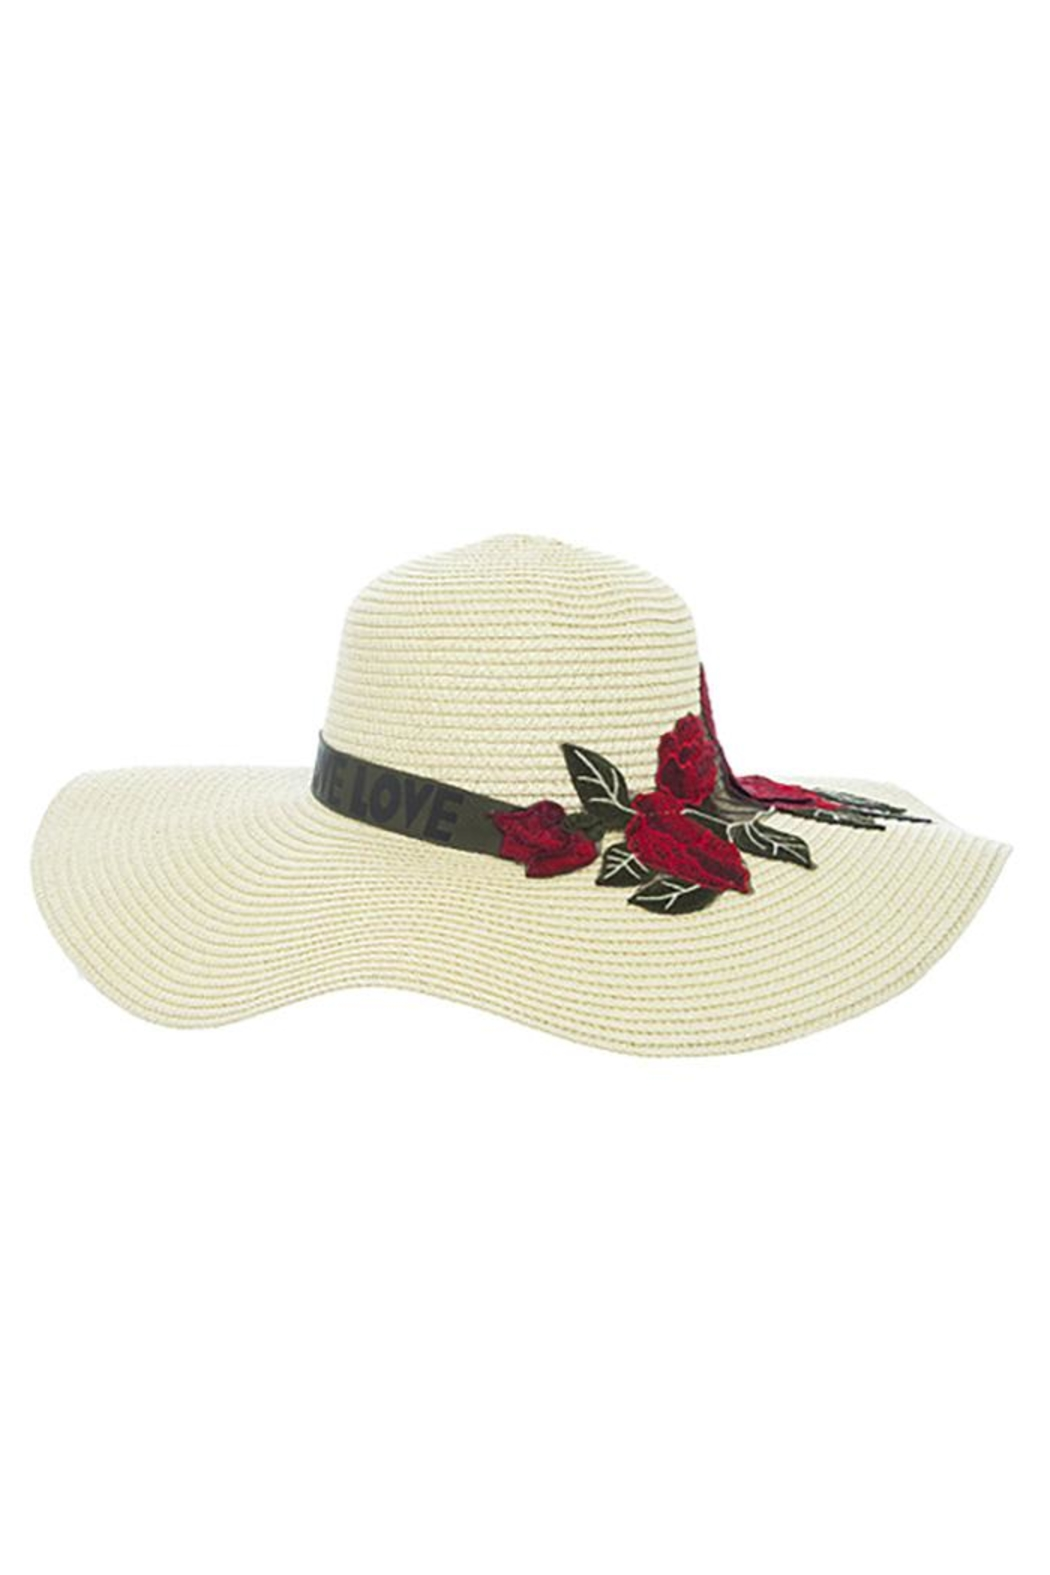 Nadya's Closet Rose Patched Floppy-Hat - Front Cropped Image